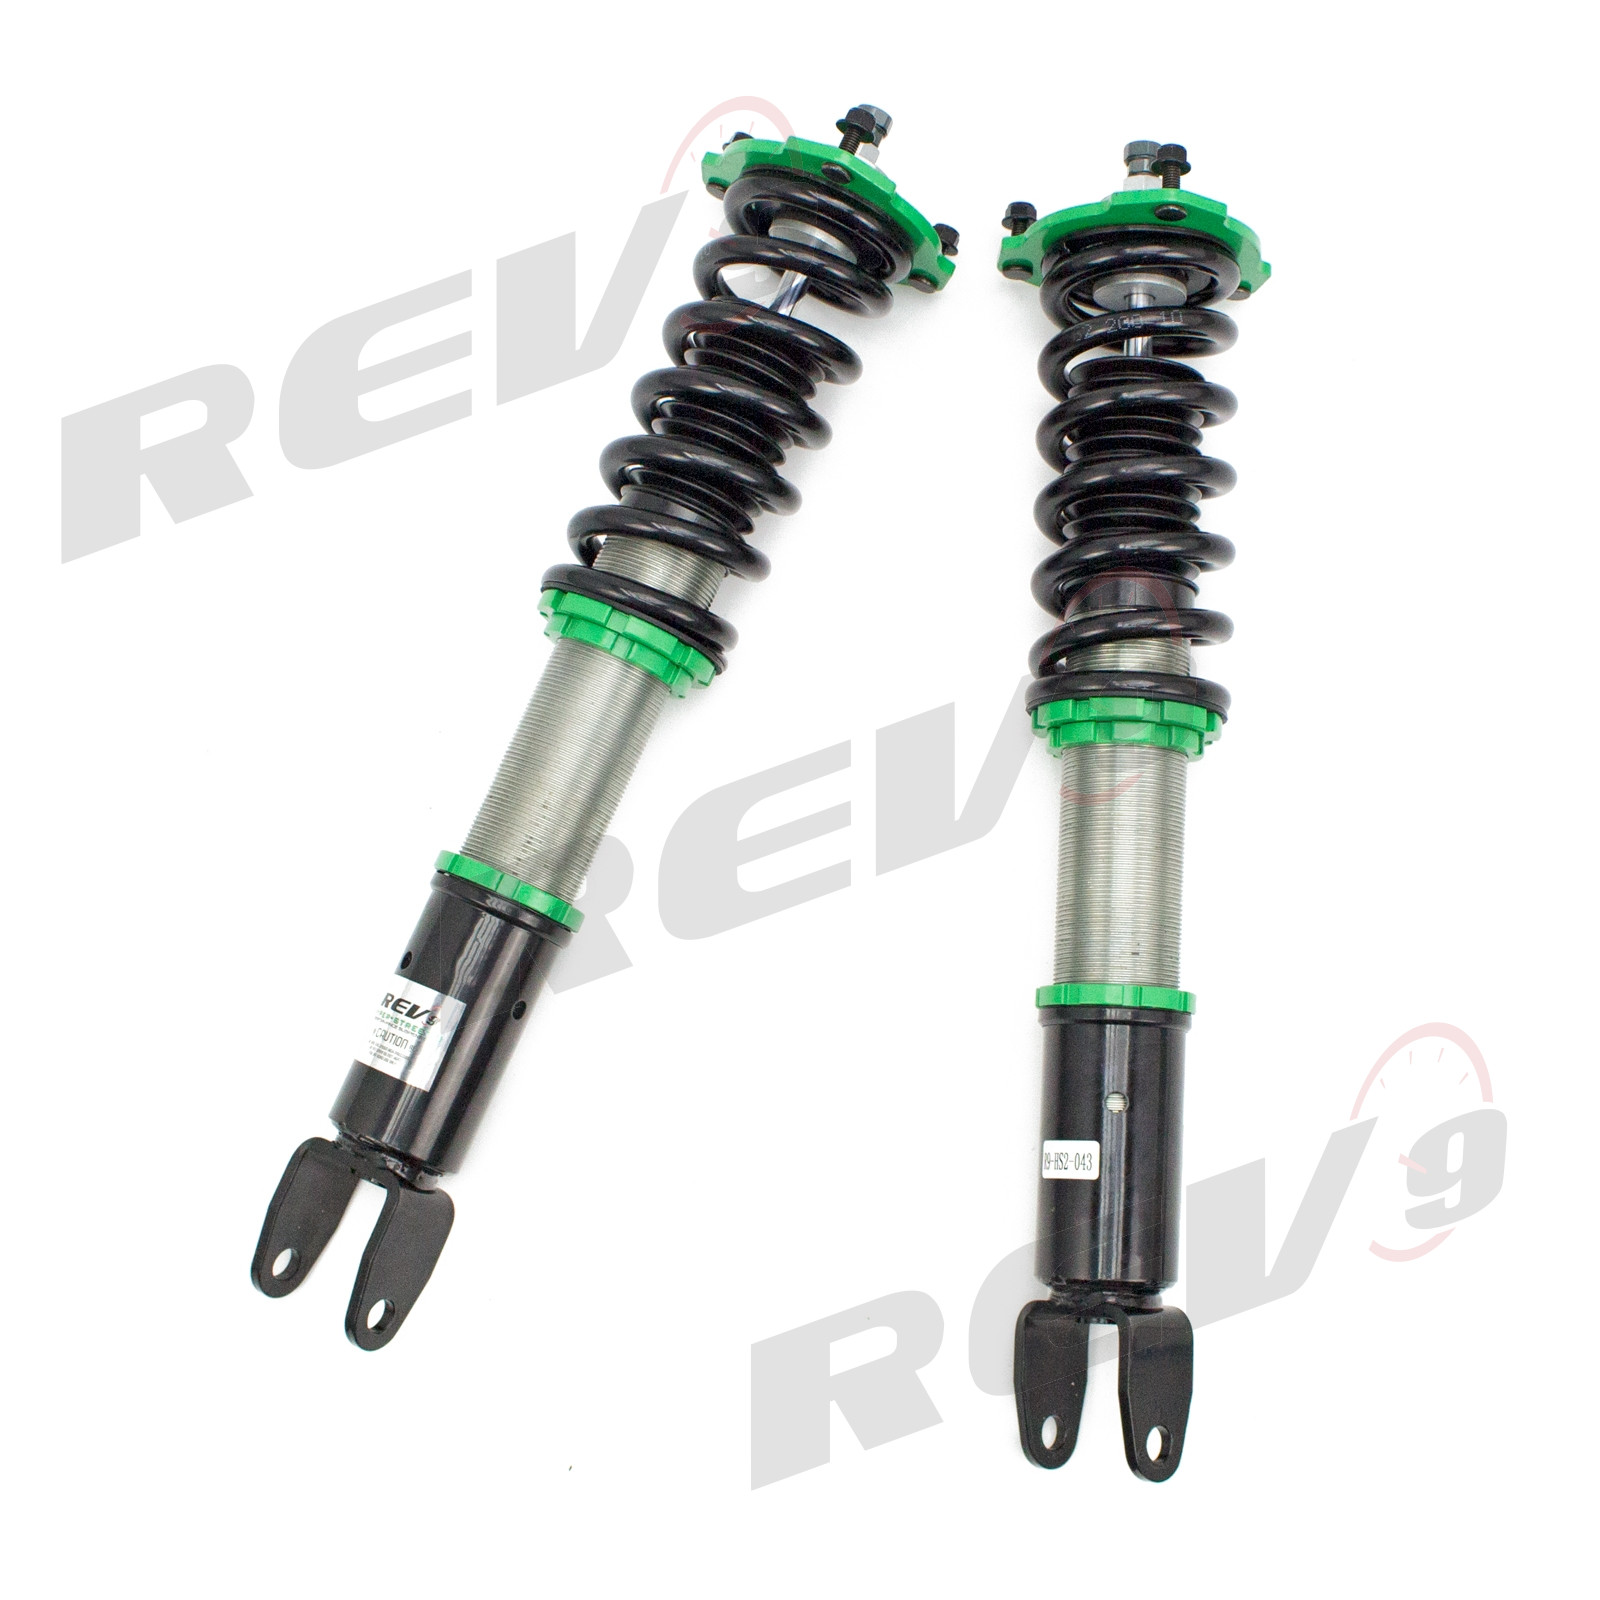 Rev9power Hyper Street 2 Coilover Dampers Lexus Gs300